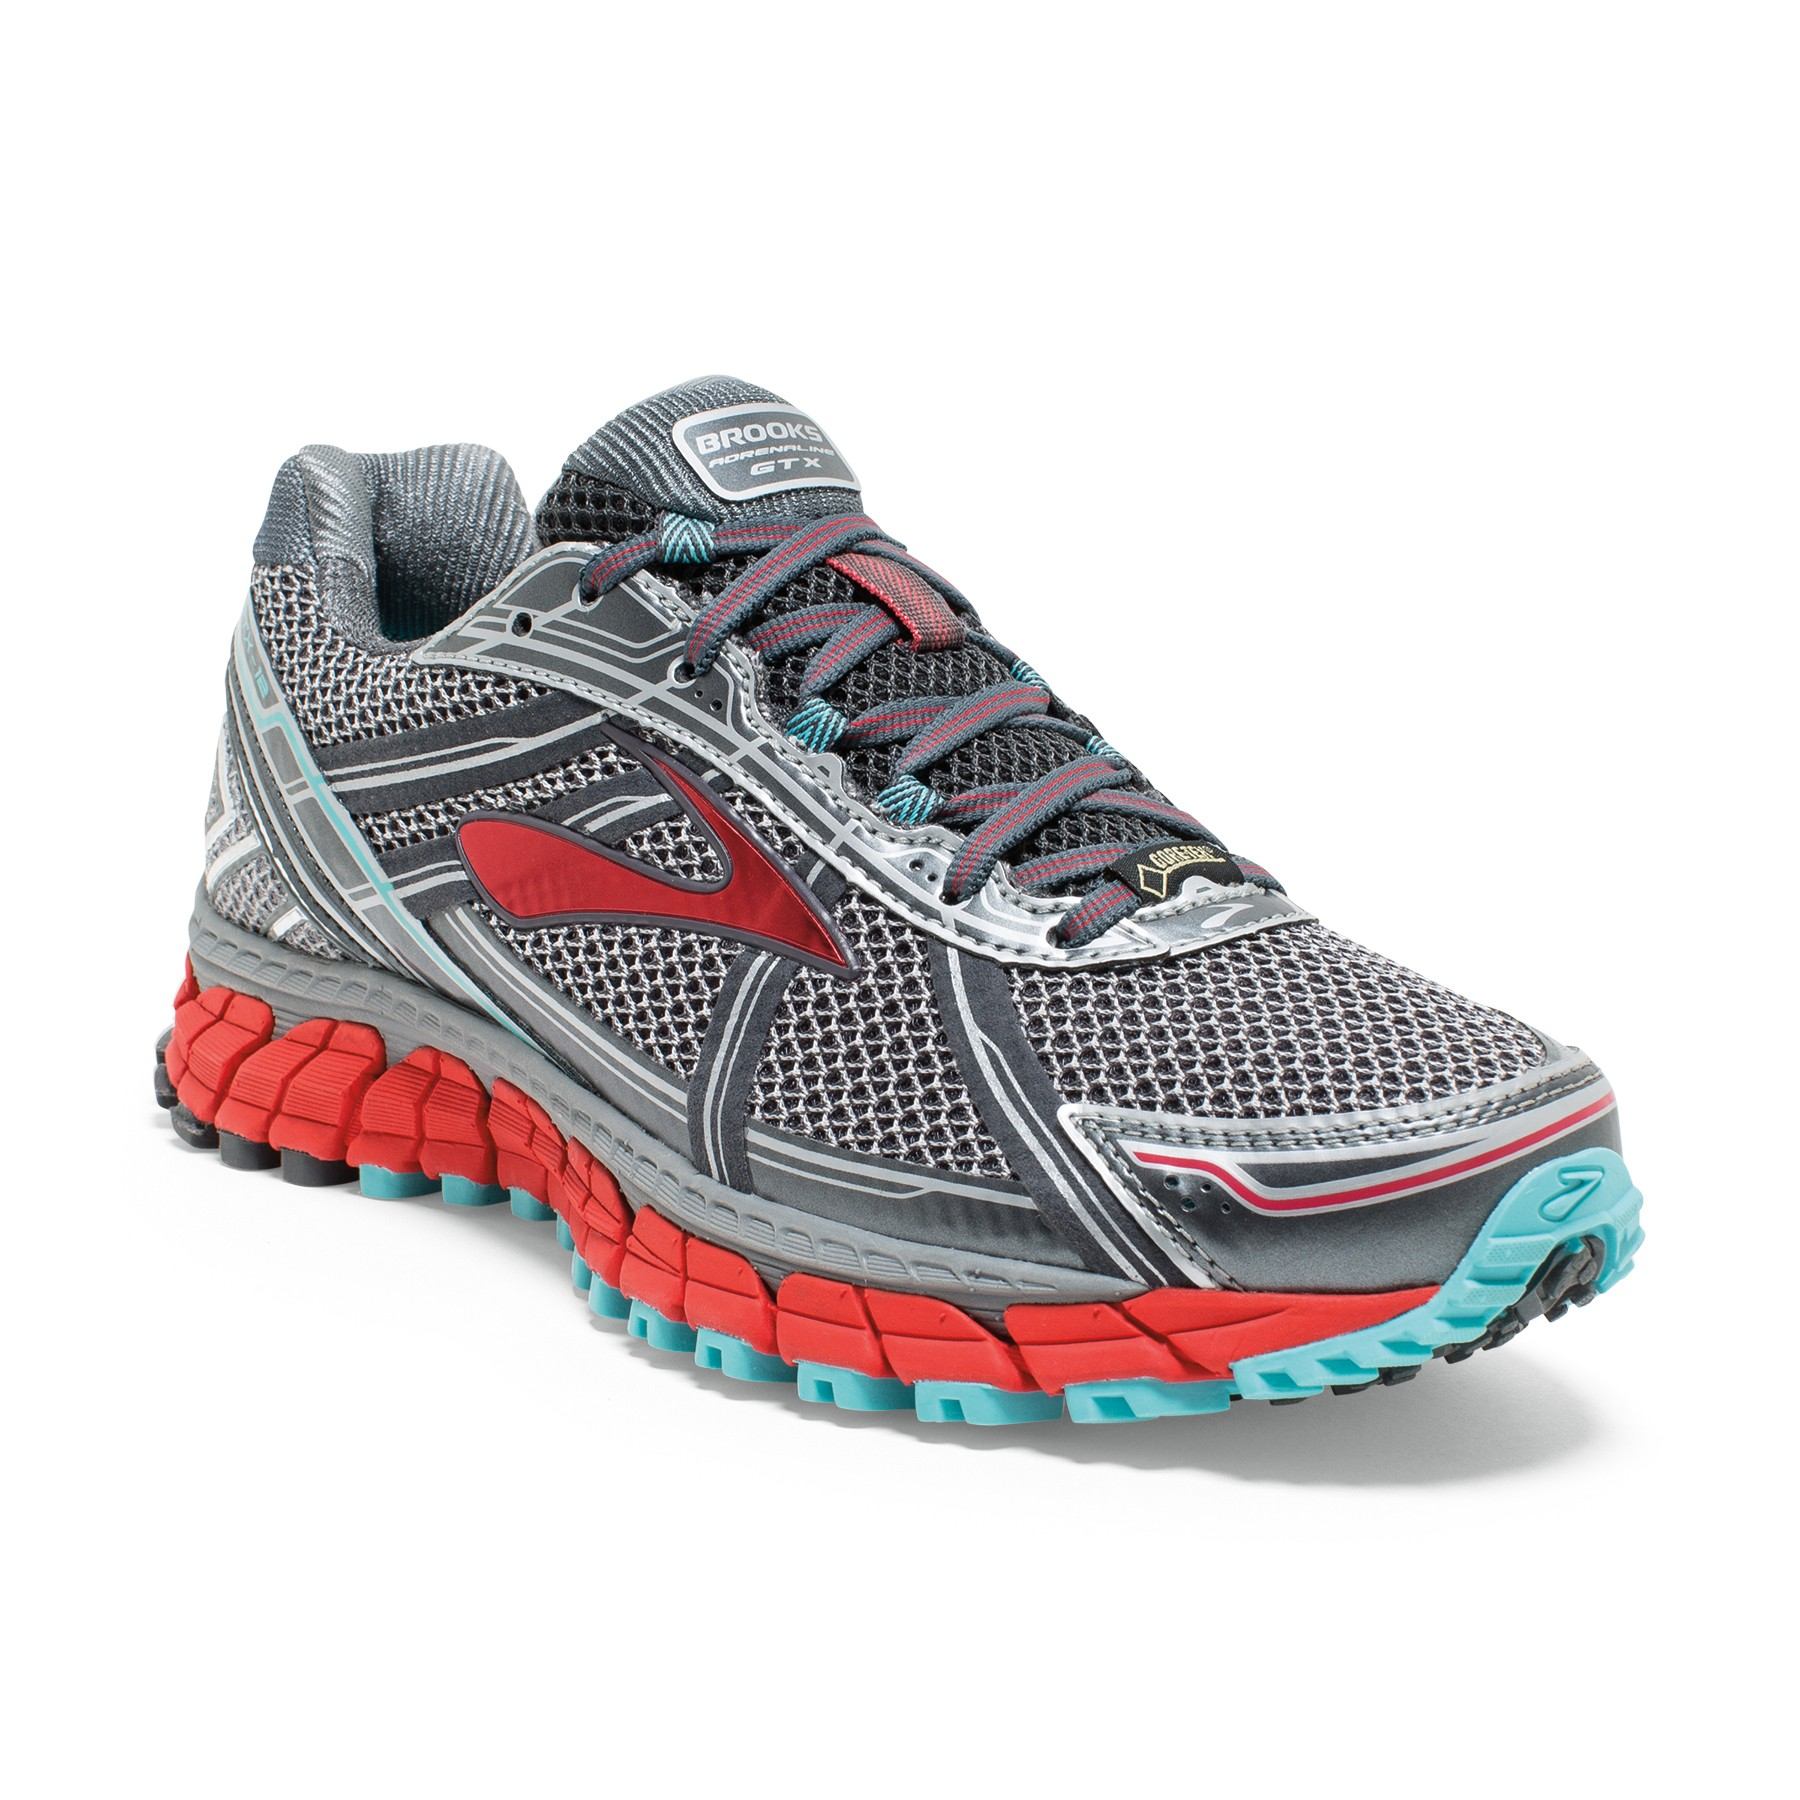 Brooks Adrenaline ASR 12 GTX 1201891b072